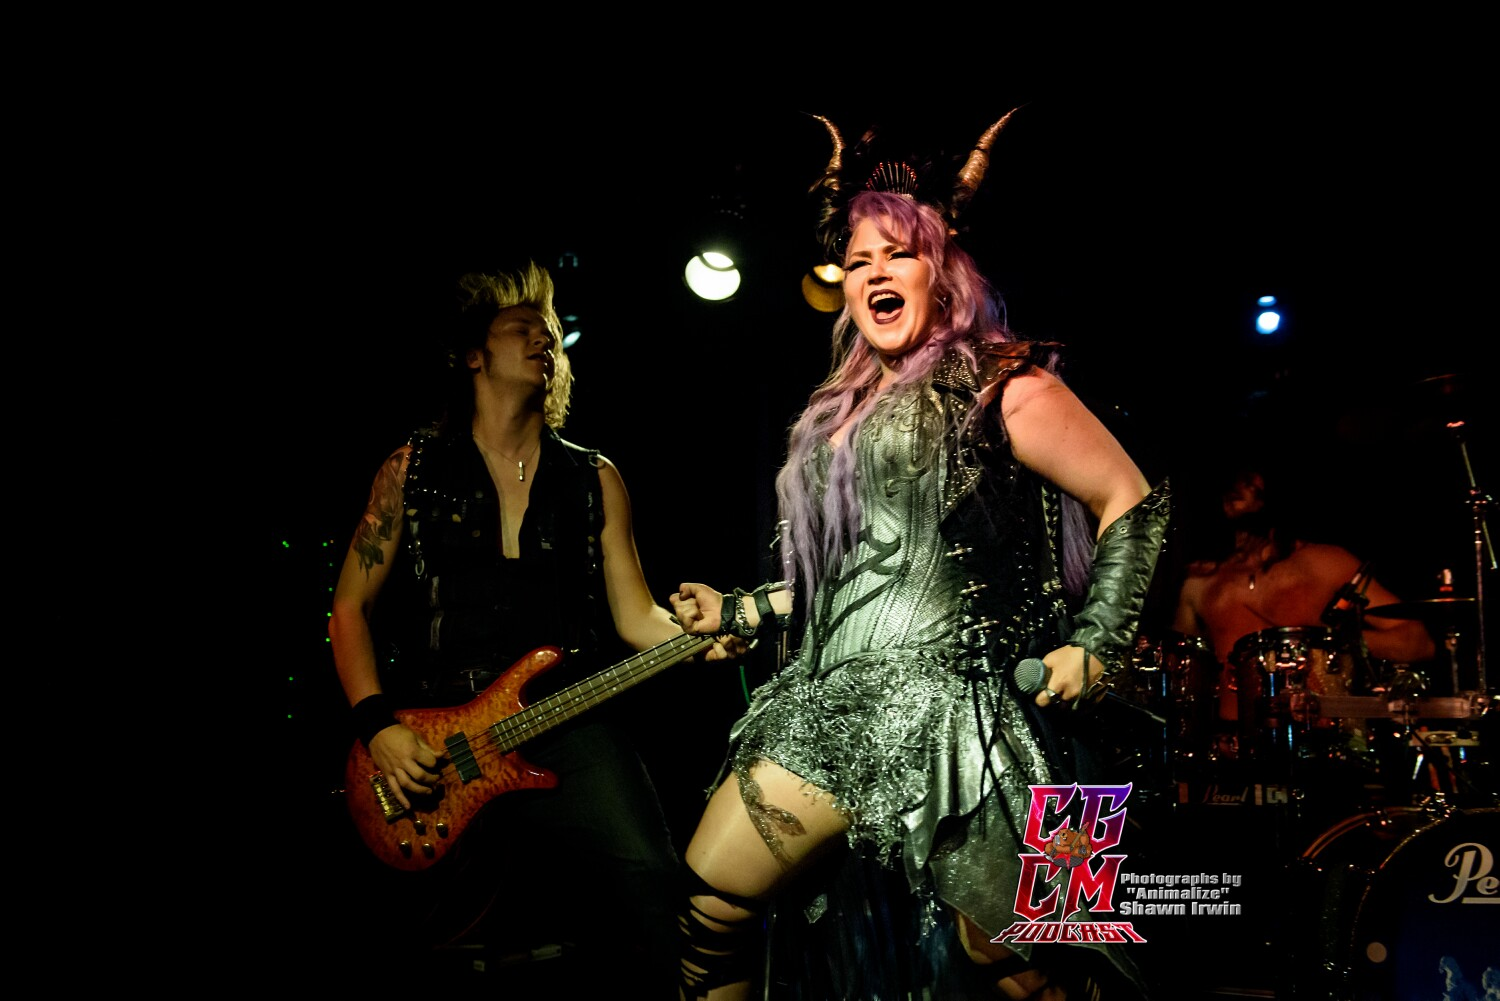 Battle Beast Photos CGCM LOGO Shawn Irwin (16 Of 34)